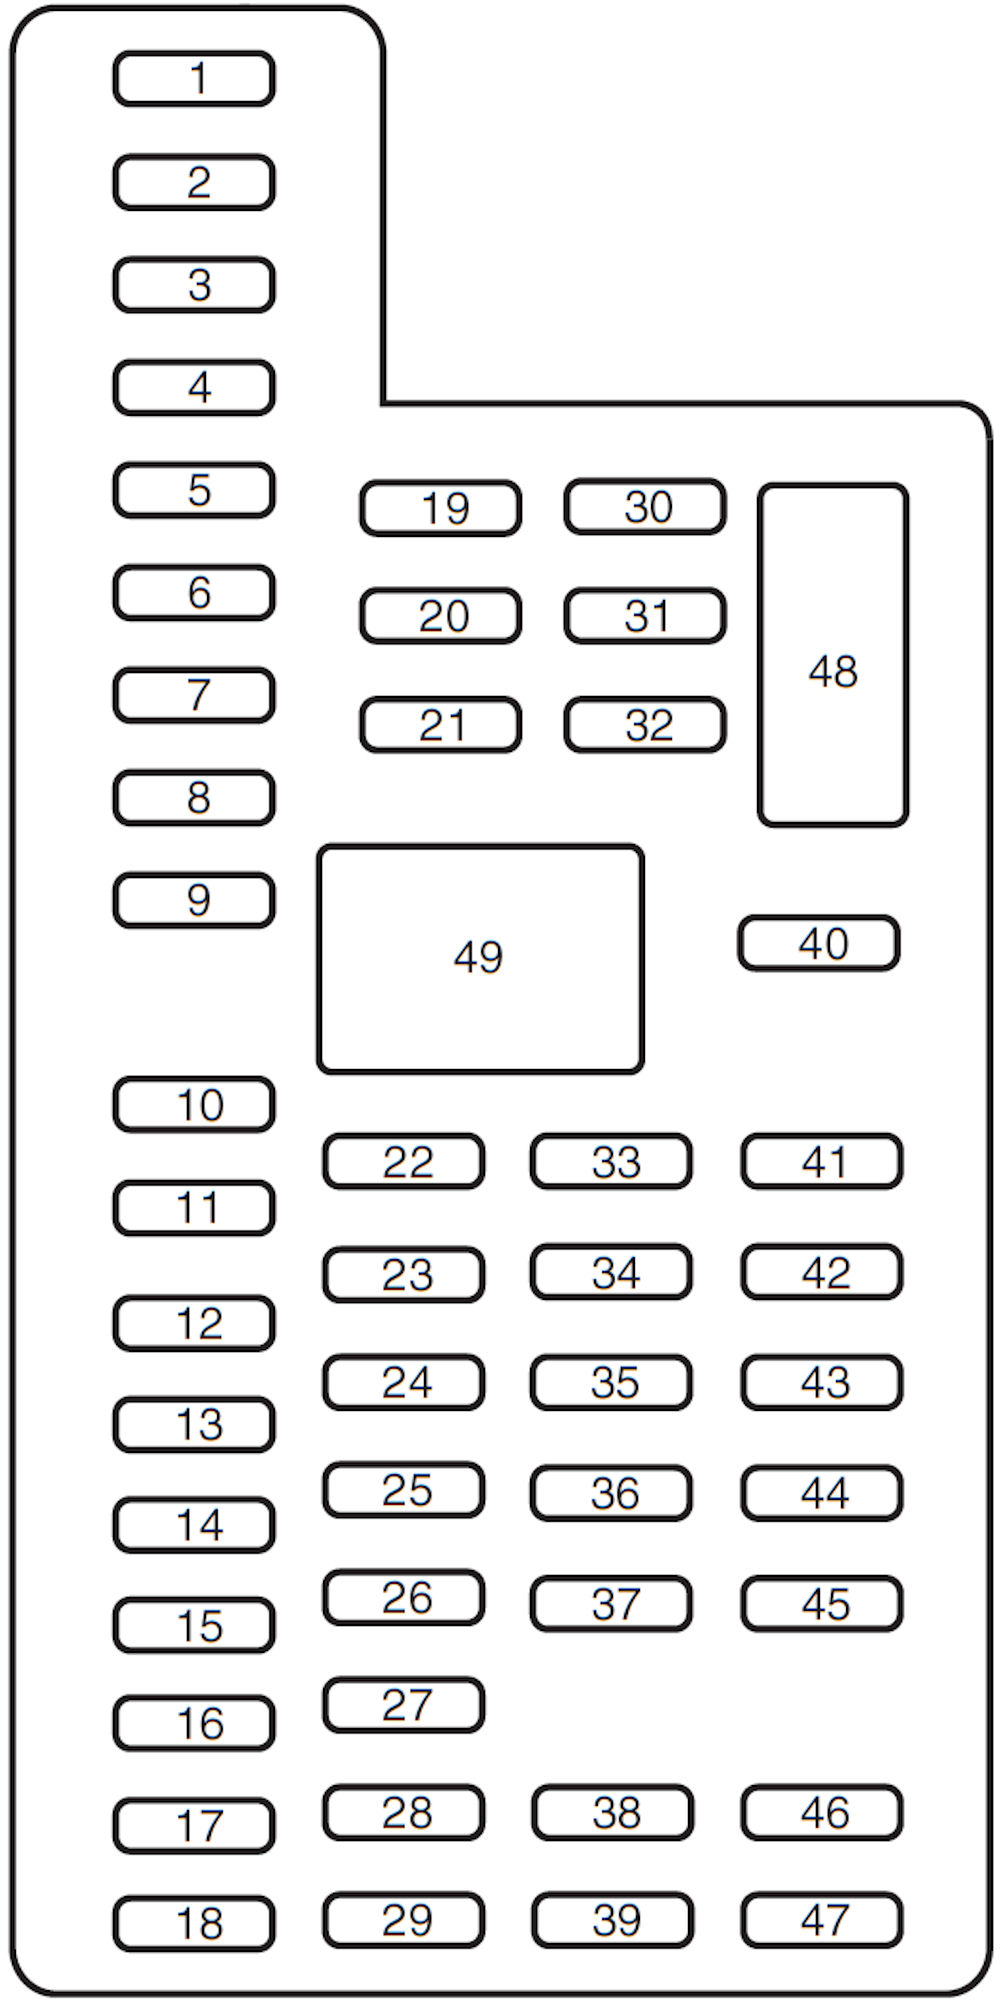 2012 Ford F150 Fuse Box Diagram Under Hood Electrical 2001 F 150 Supercrew Platinum House Wiring Symbols U2022 2008